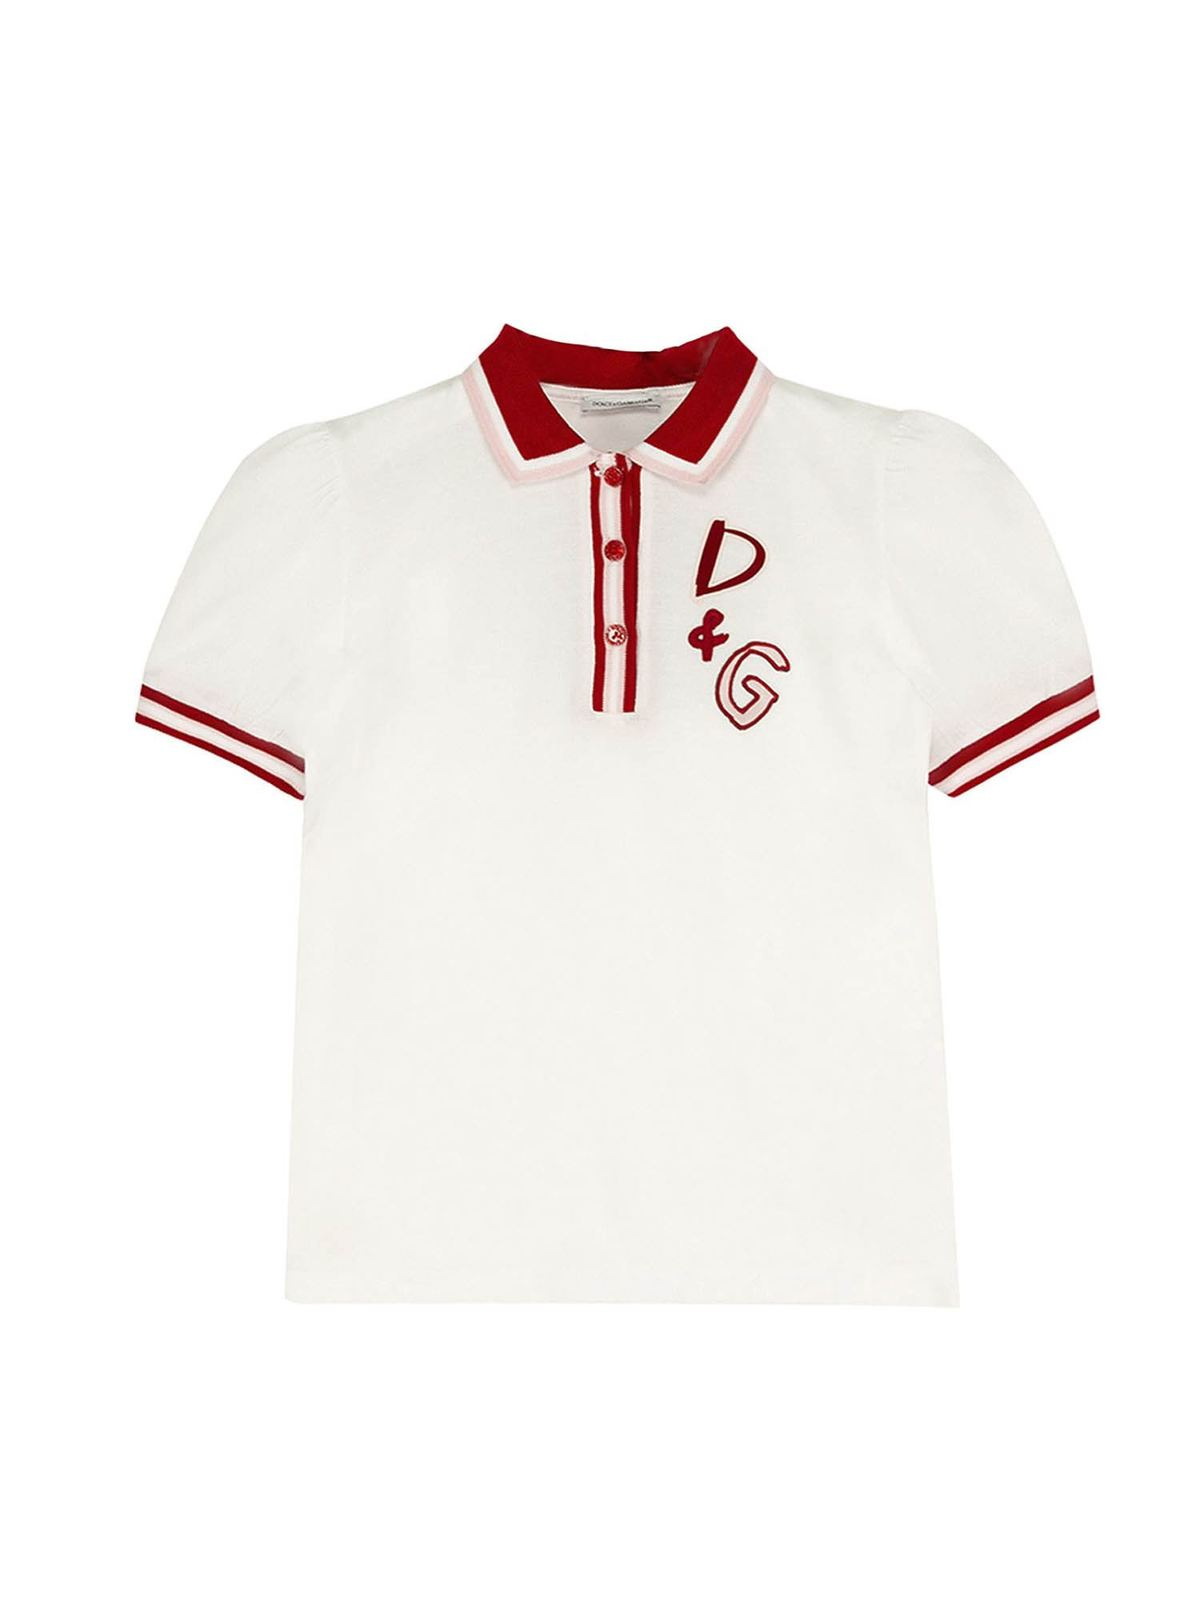 DOLCE & GABBANA JR BRANDED POLO SHIRT IN WHITE AND RED